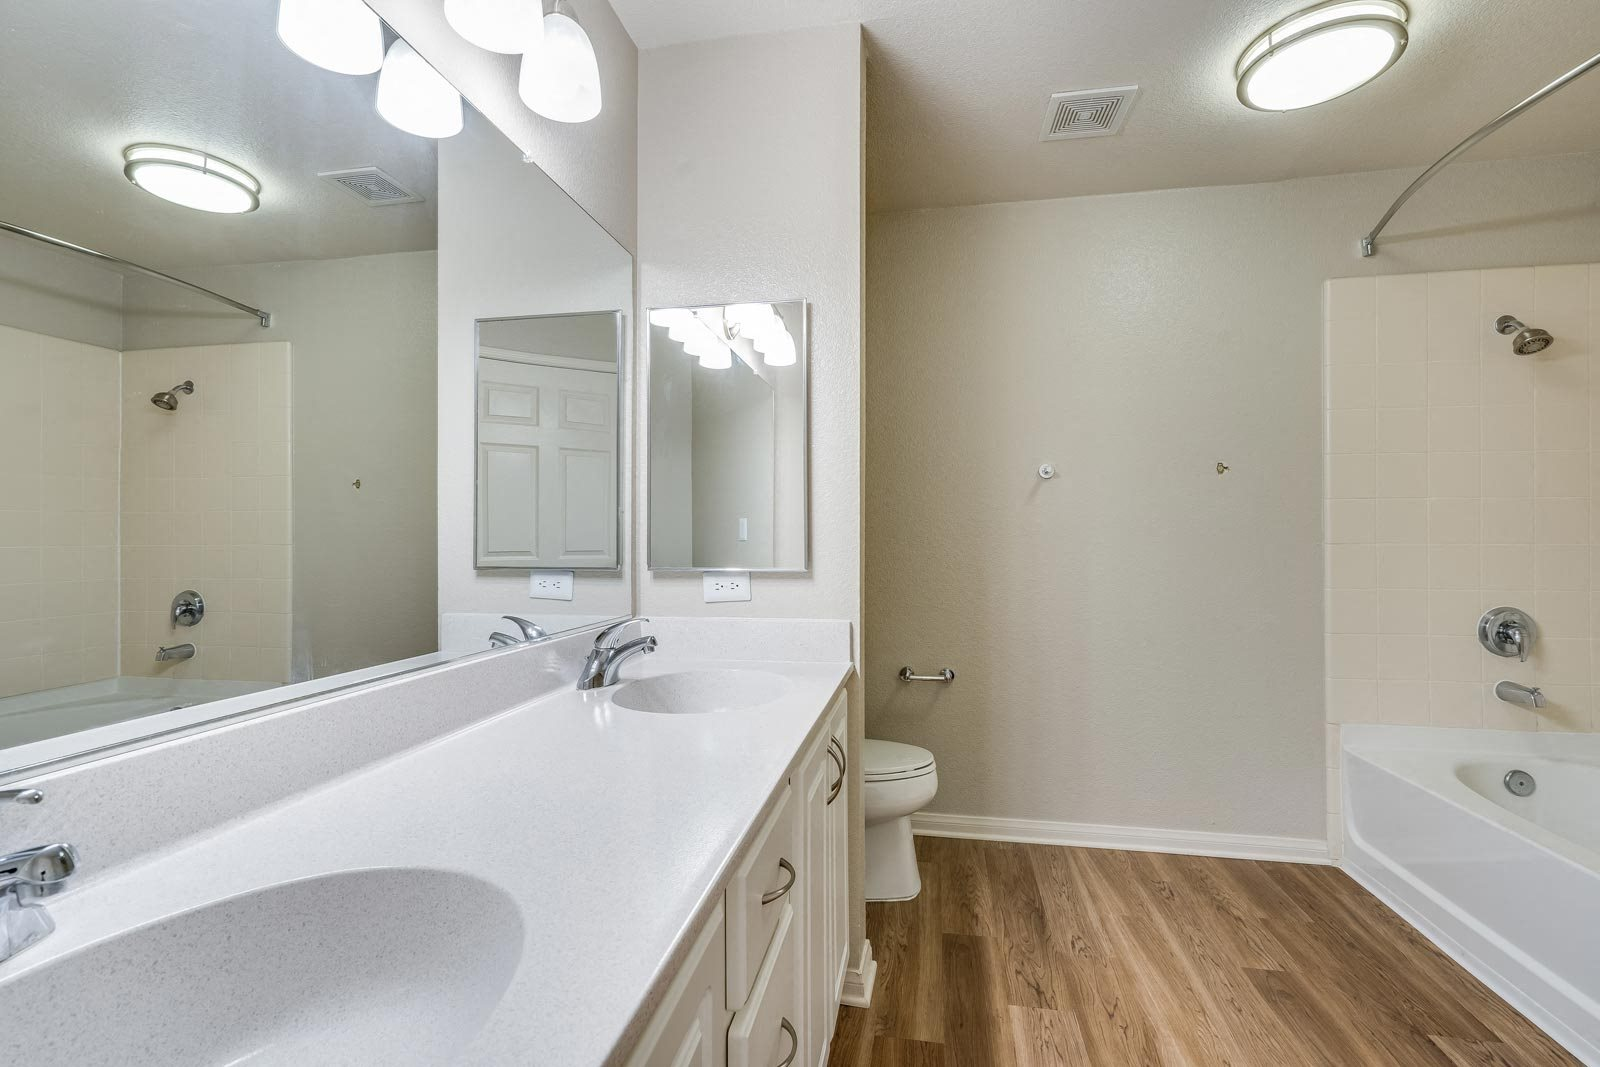 Renovated Bathrooms with New Flooring and Fixtures at Windsor at Redwood Creek, 600 Rohnert Park Expressway West, CA